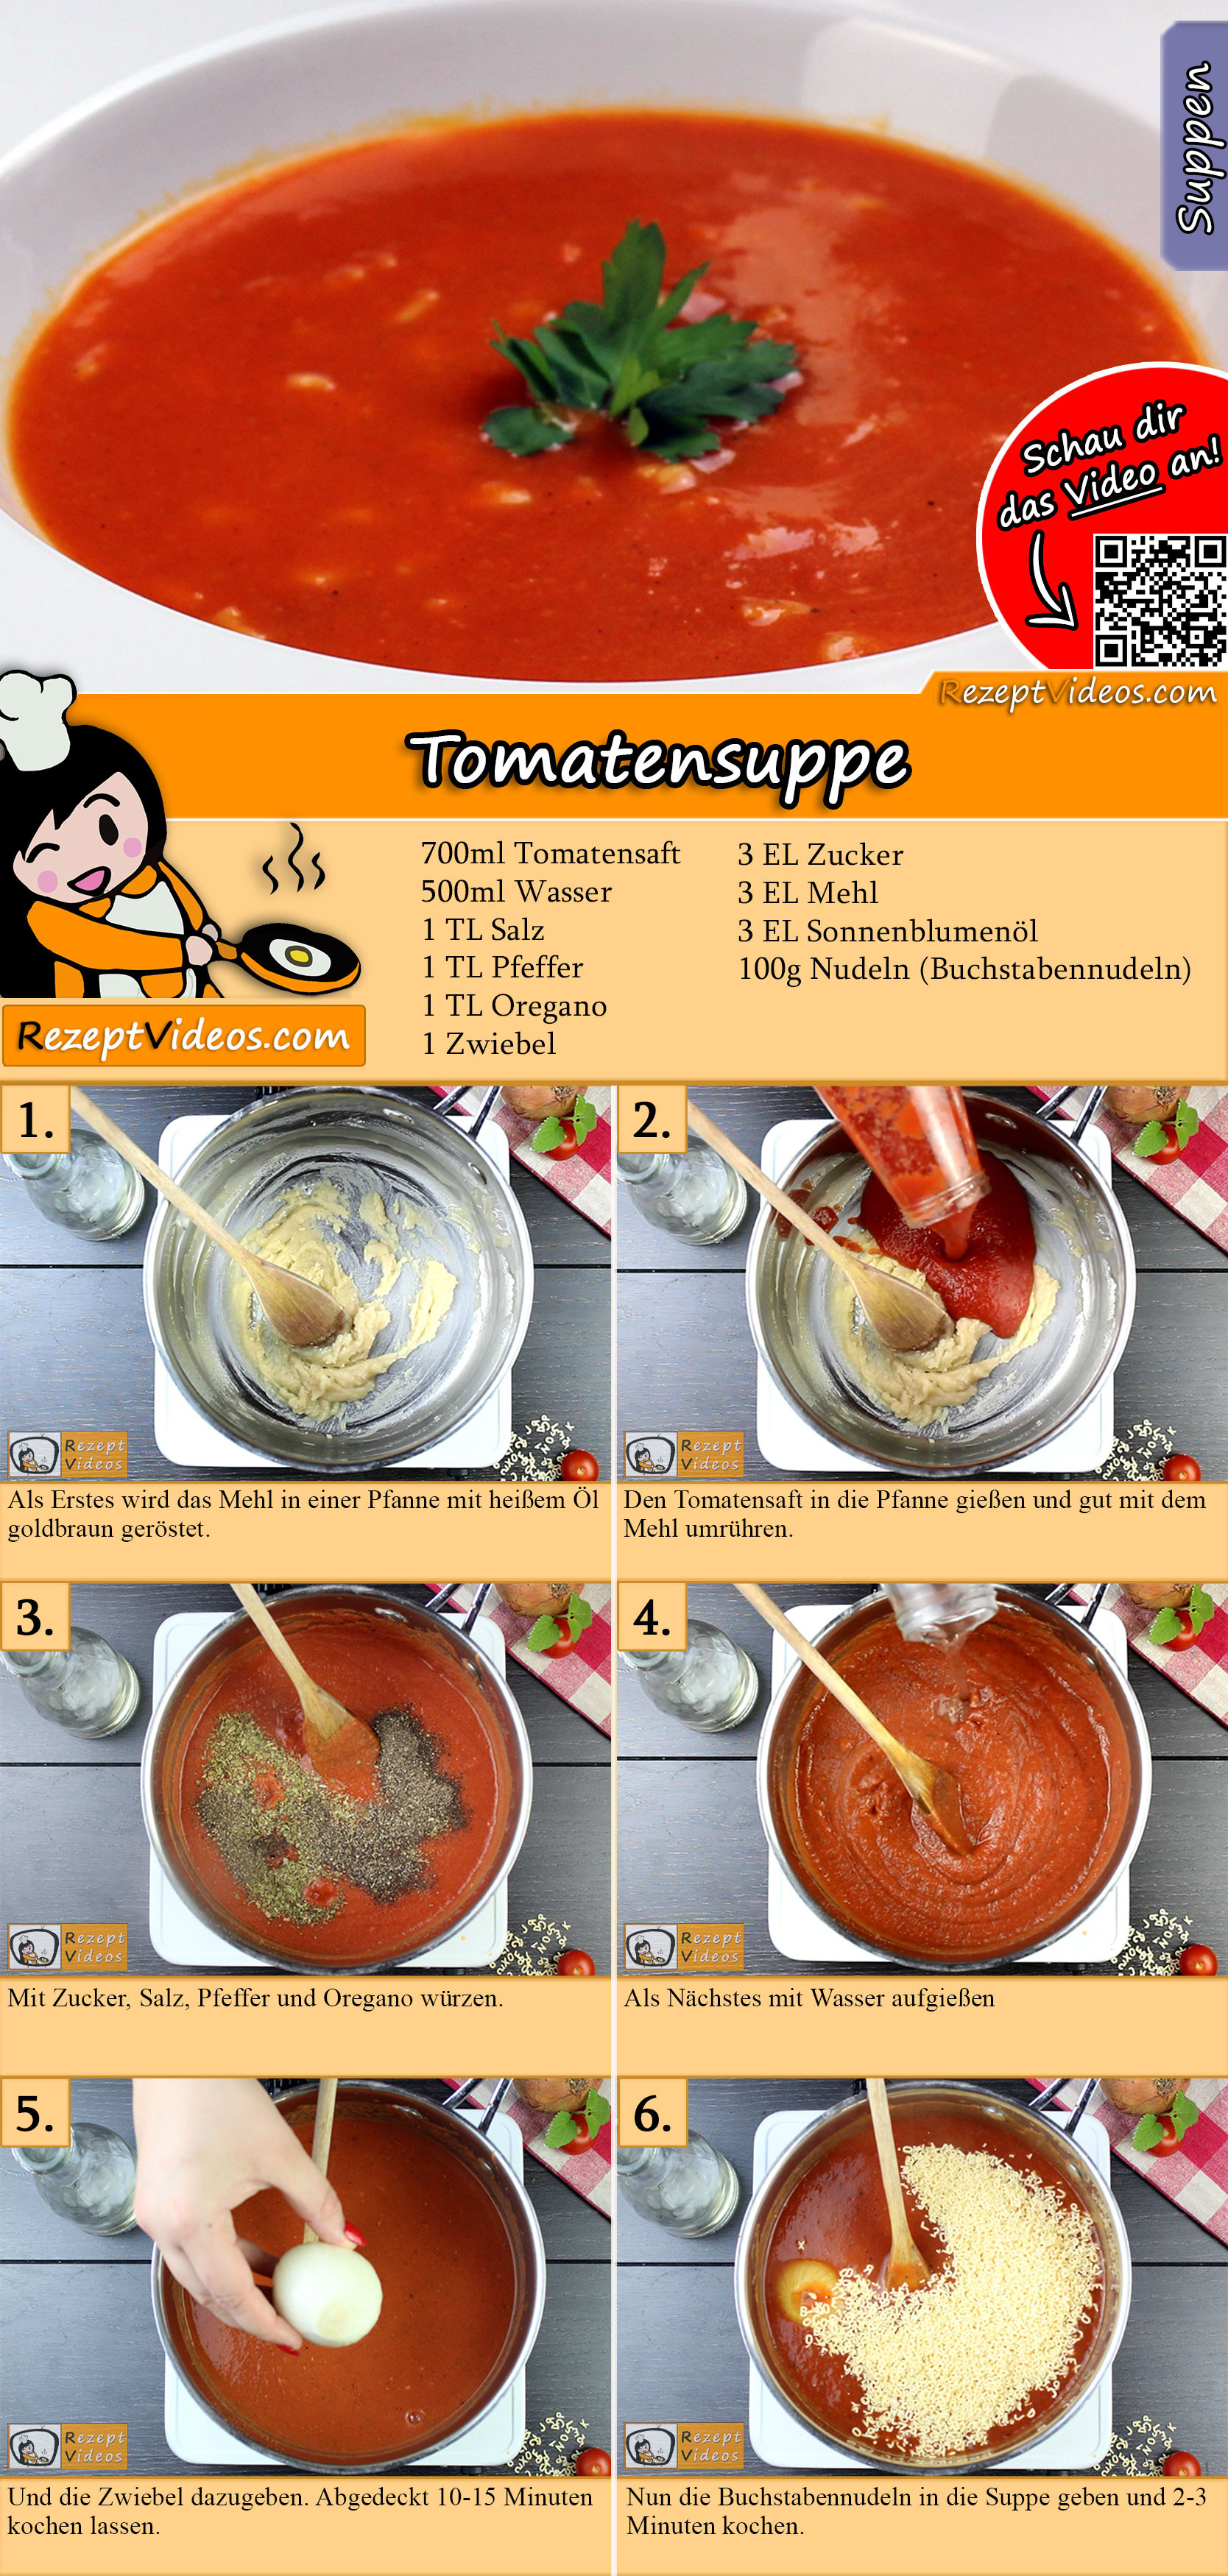 Tomatensuppe Rezept mit Video